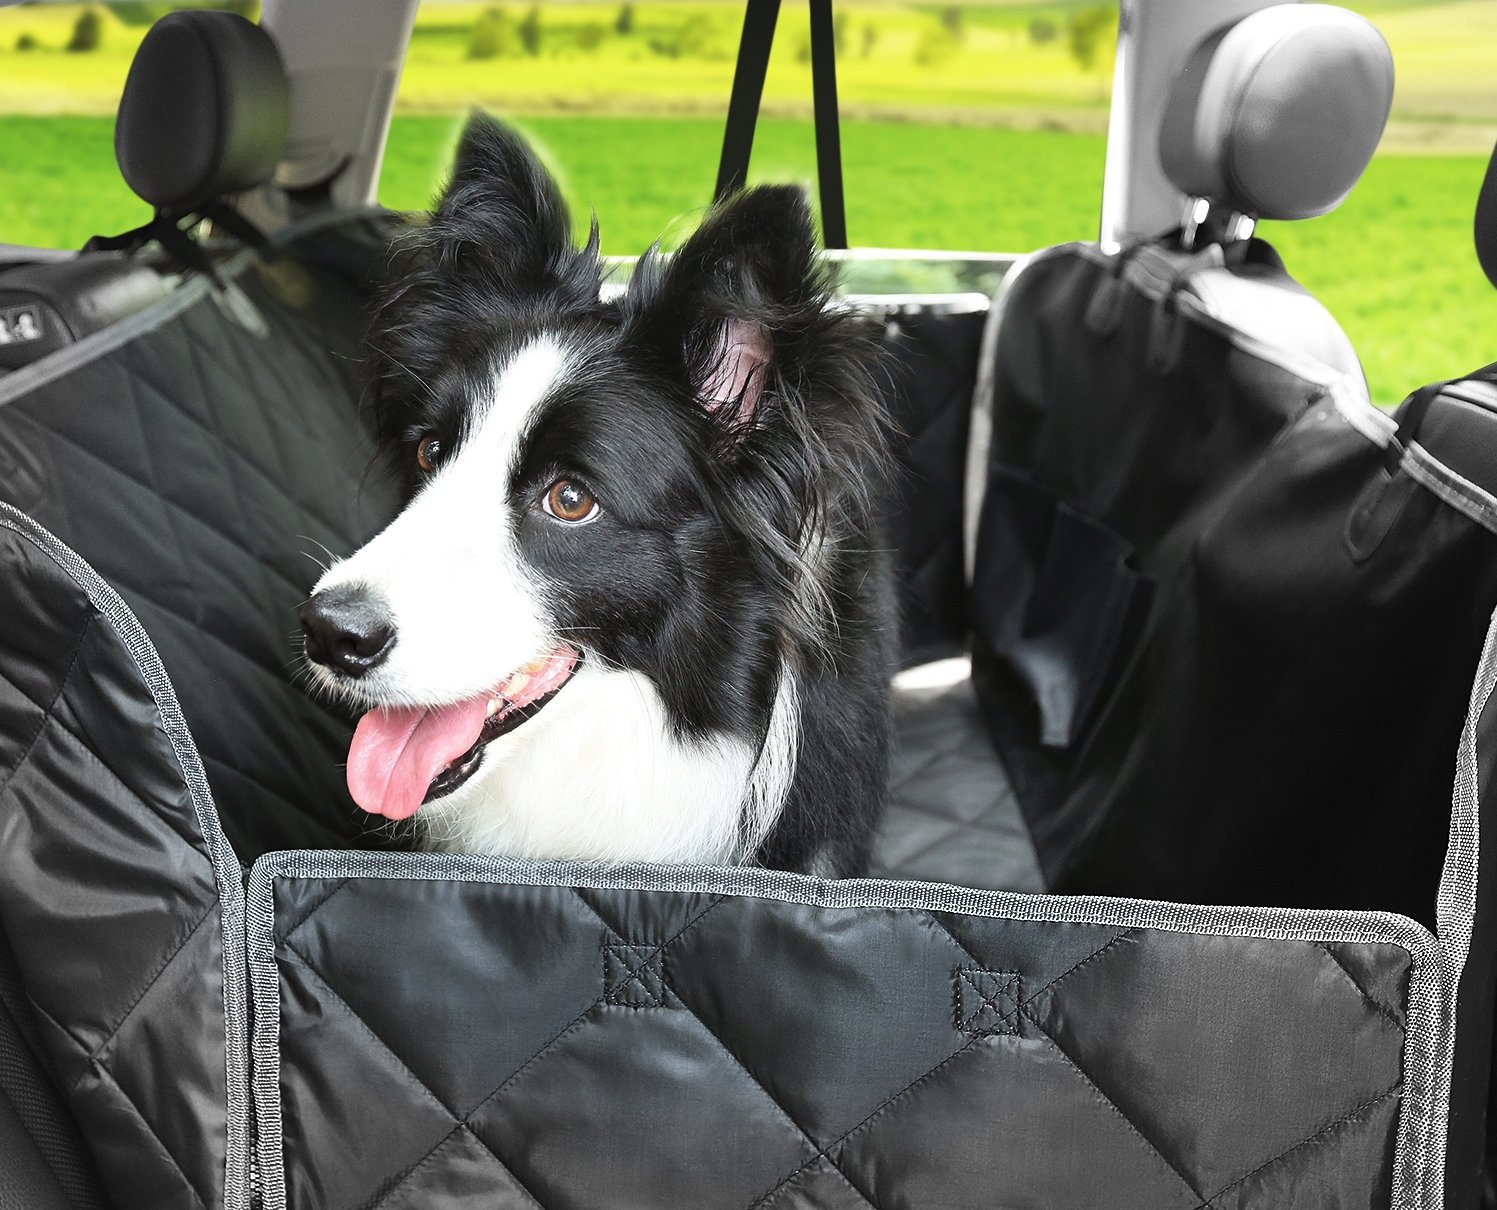 The Best Pet Car Seat Covers In 2020: Reviews & Buying Guide 8